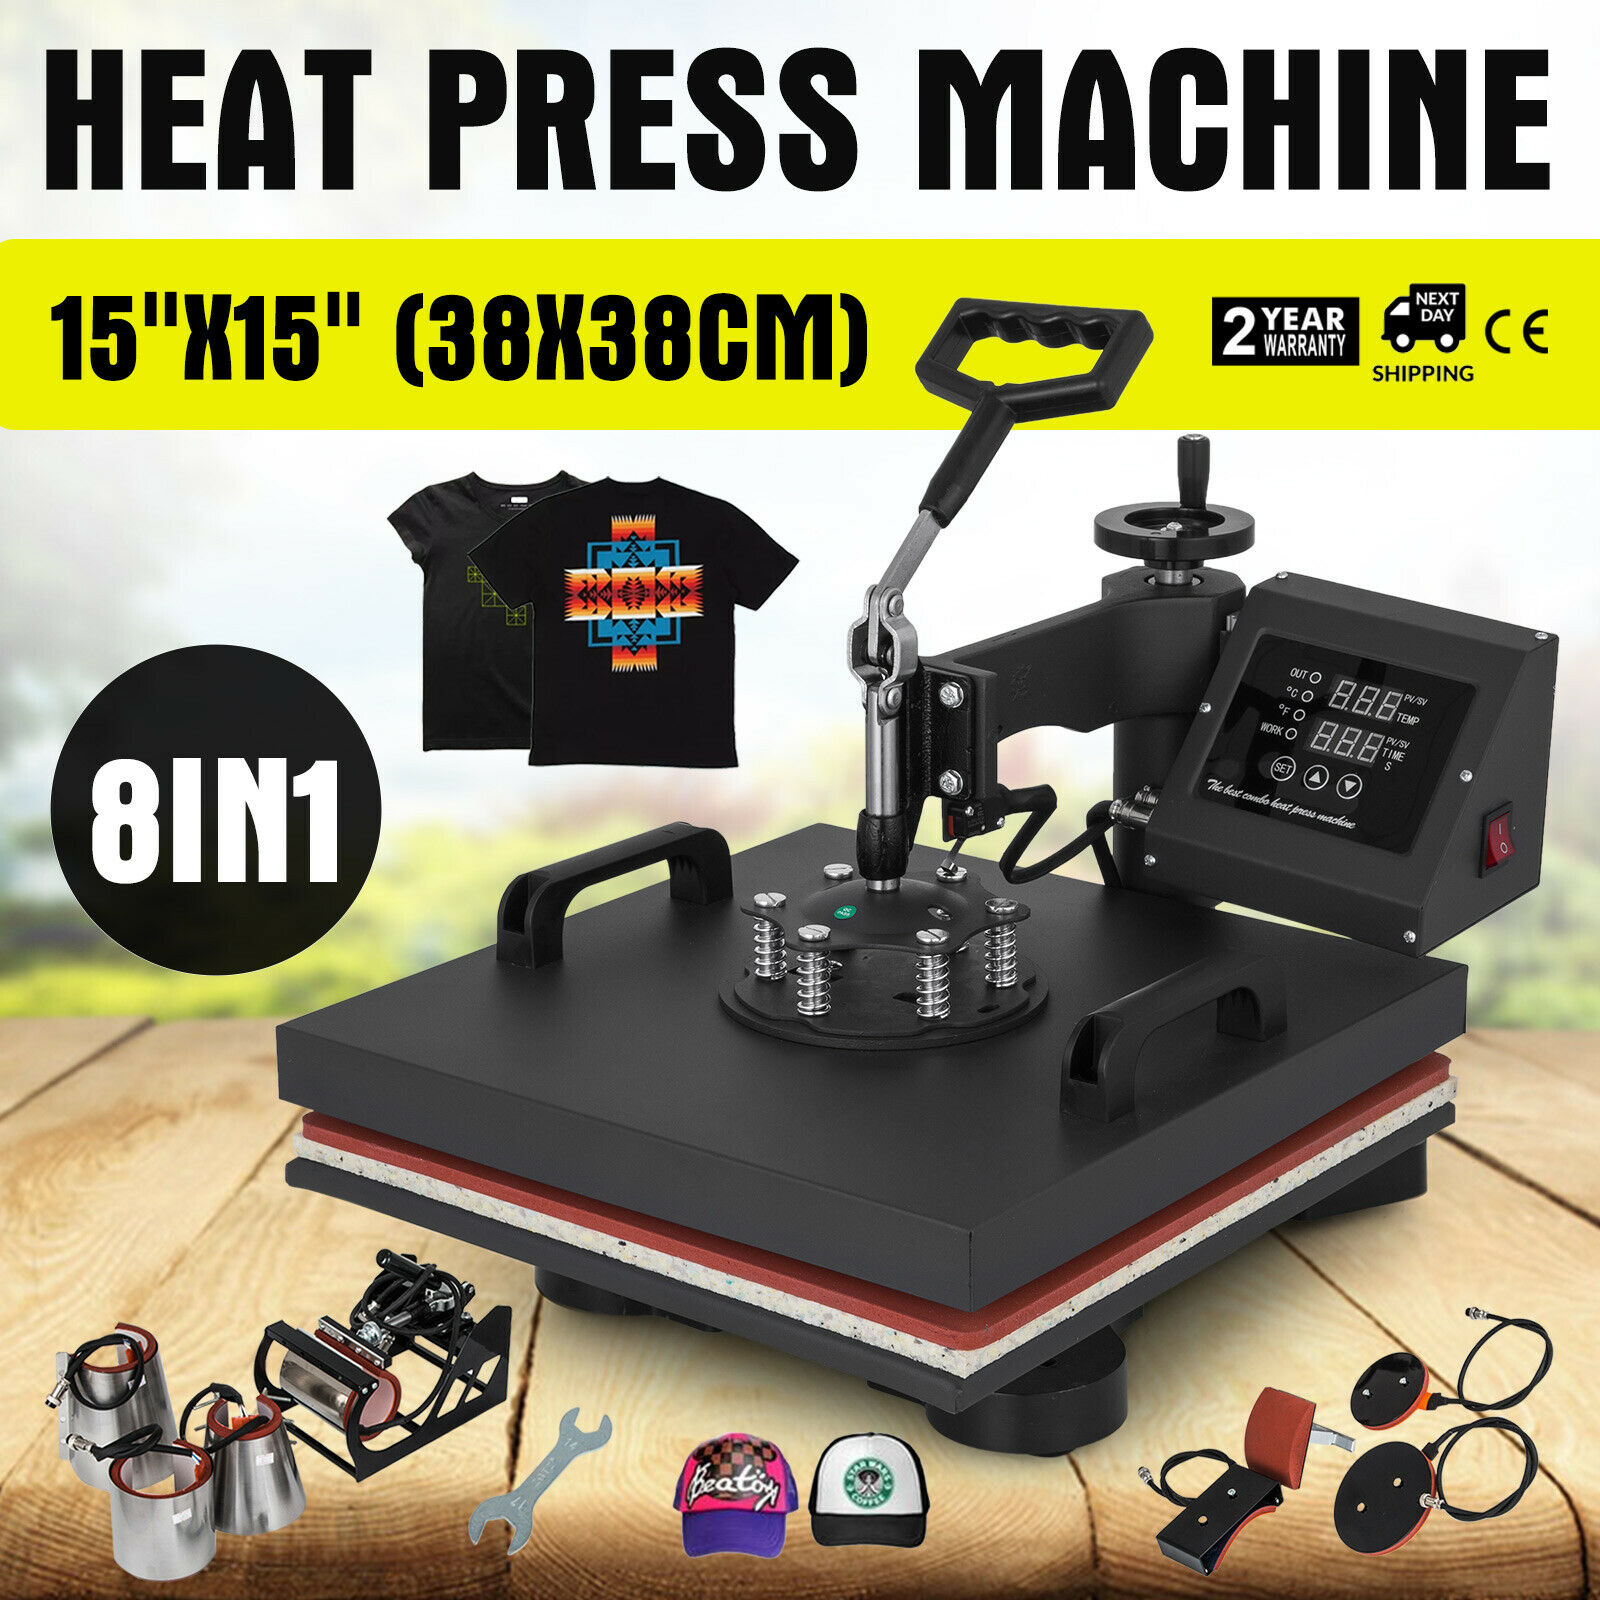 """8 in 1 Heat Press Machine For T Shirts 15""""x15"""" Combo Kit Sublimation Swing away